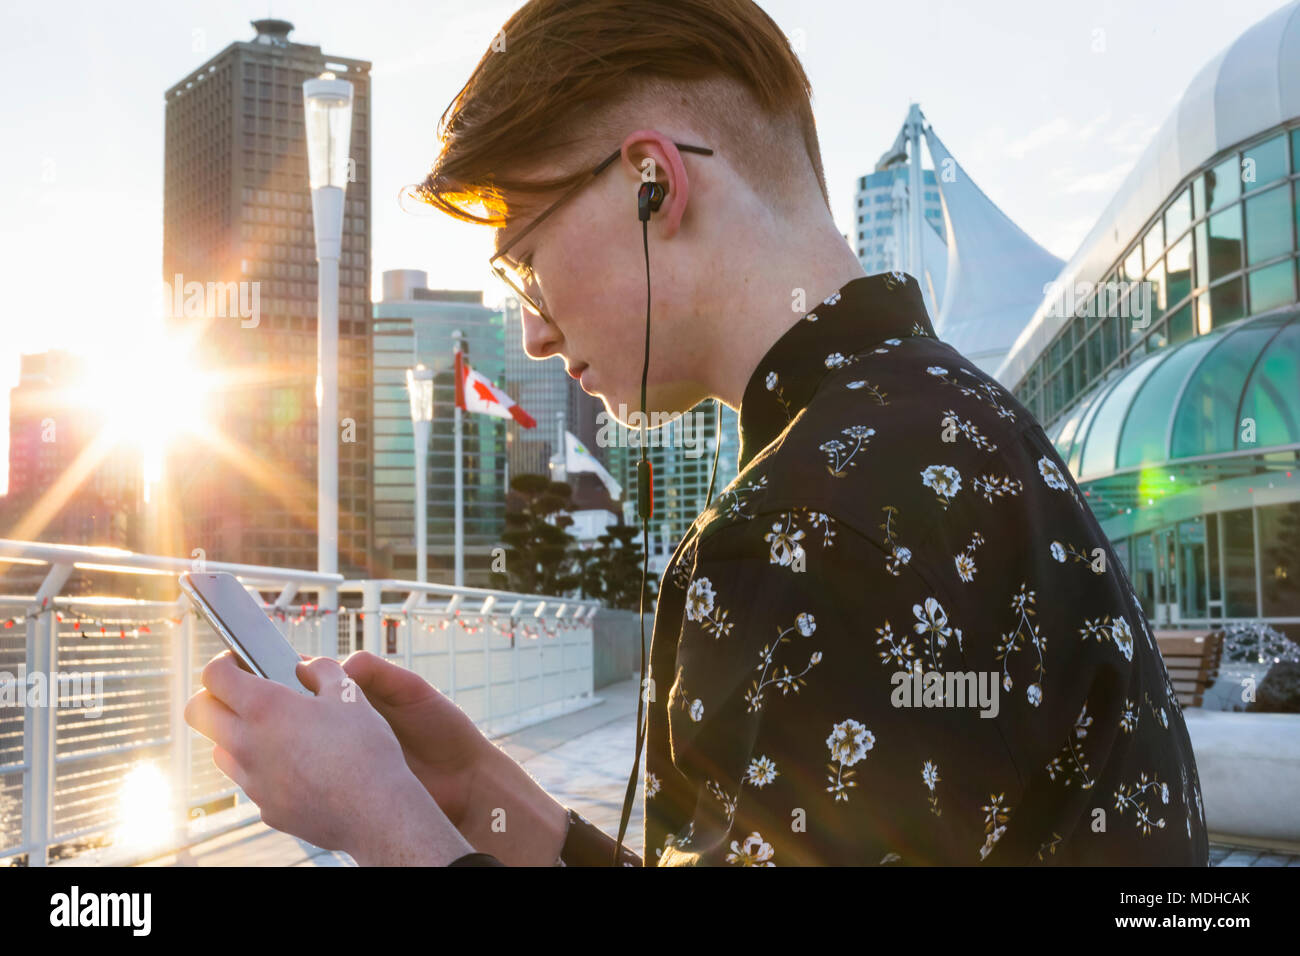 Teenage boy using his smart phone and wearing earbuds in downtown Vancouver; Vancouver, British Columbia, Canada - Stock Image